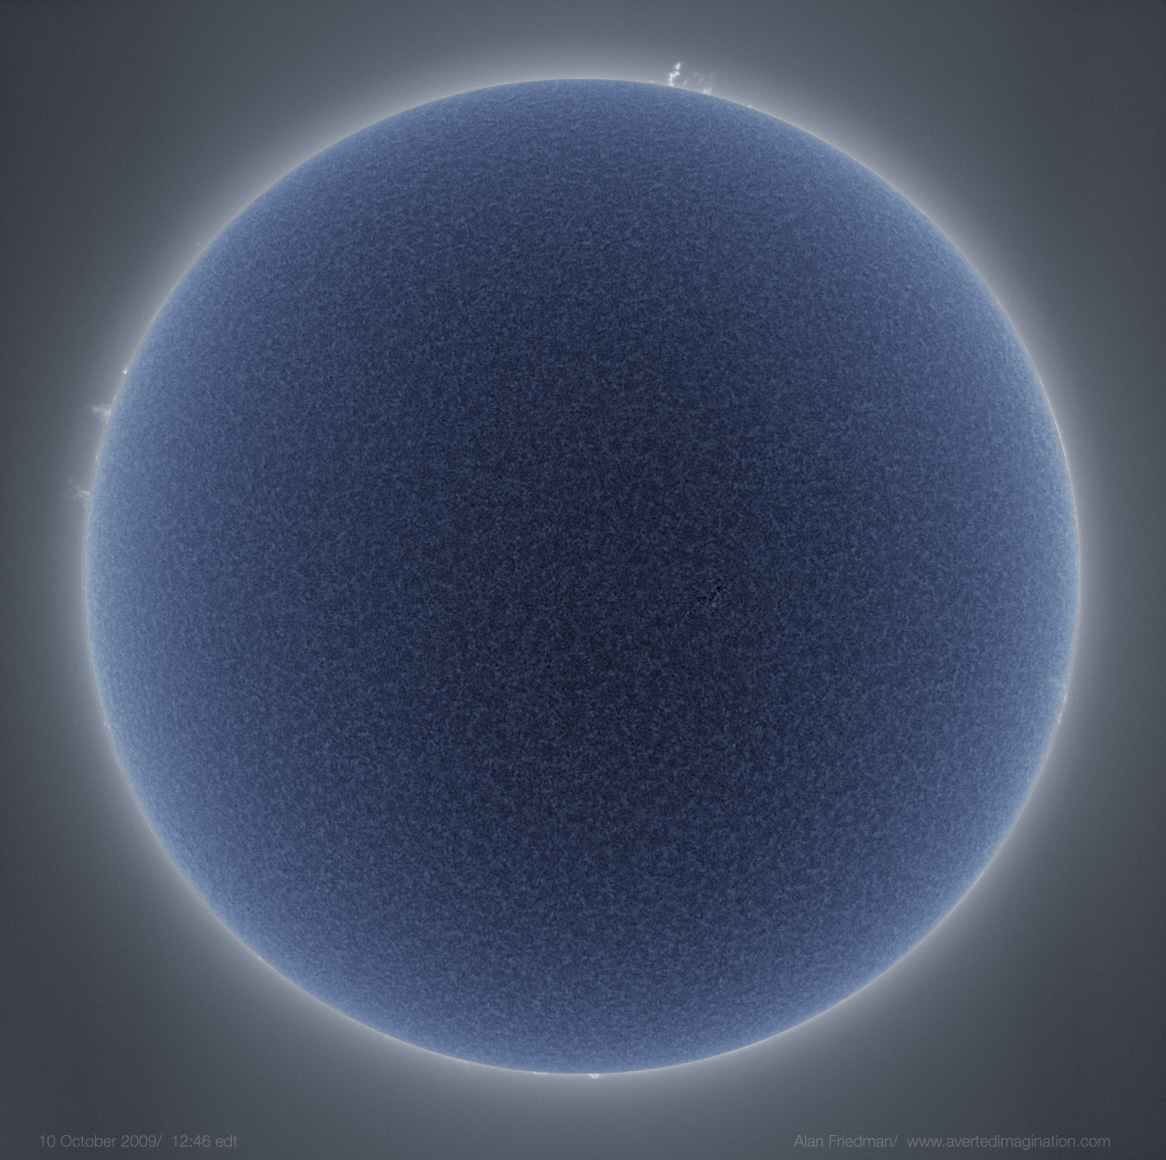 http://apod.nasa.gov/apod/image/0911/bluesun_friedman_big.jpg